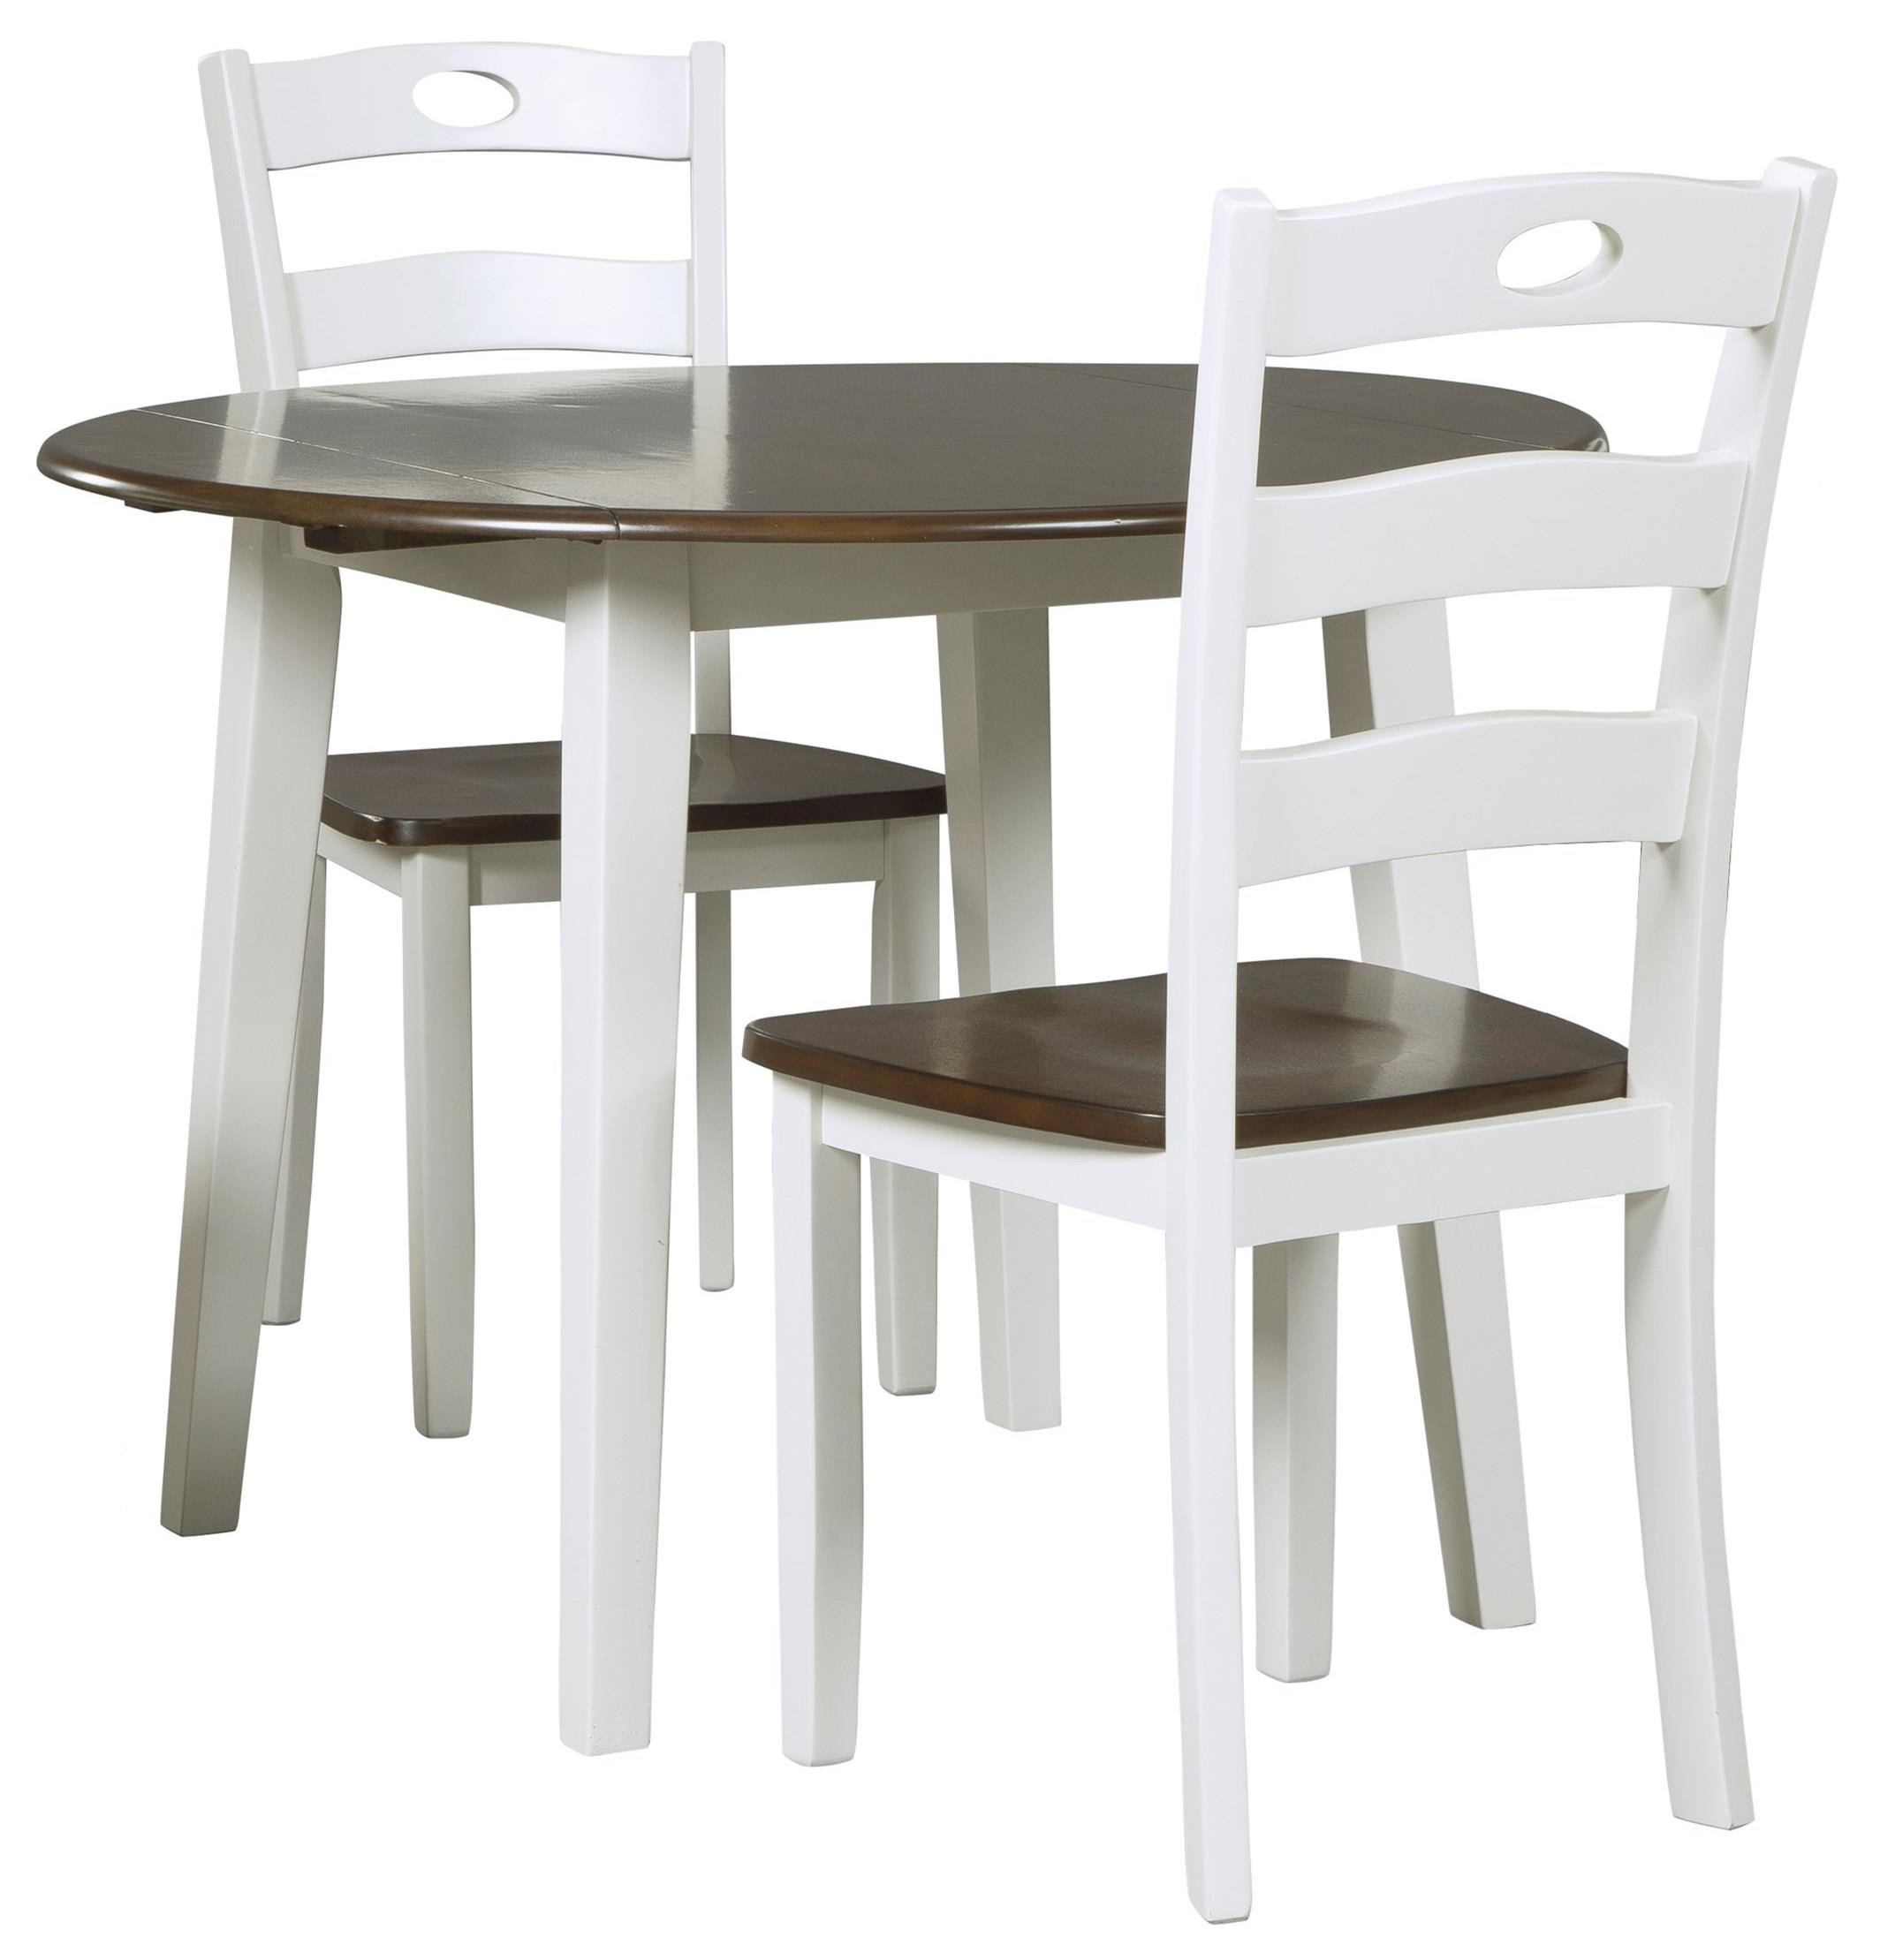 Signature design by ashley woodanville 3 piece round drop for Round dining table set with leaf